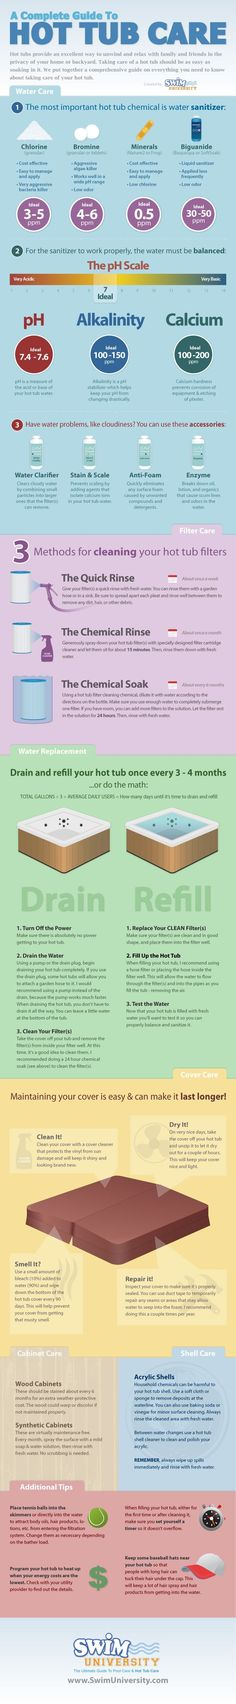 Hot Tub & Spa Care Info-graphic. how to take care of your hot tub spa.